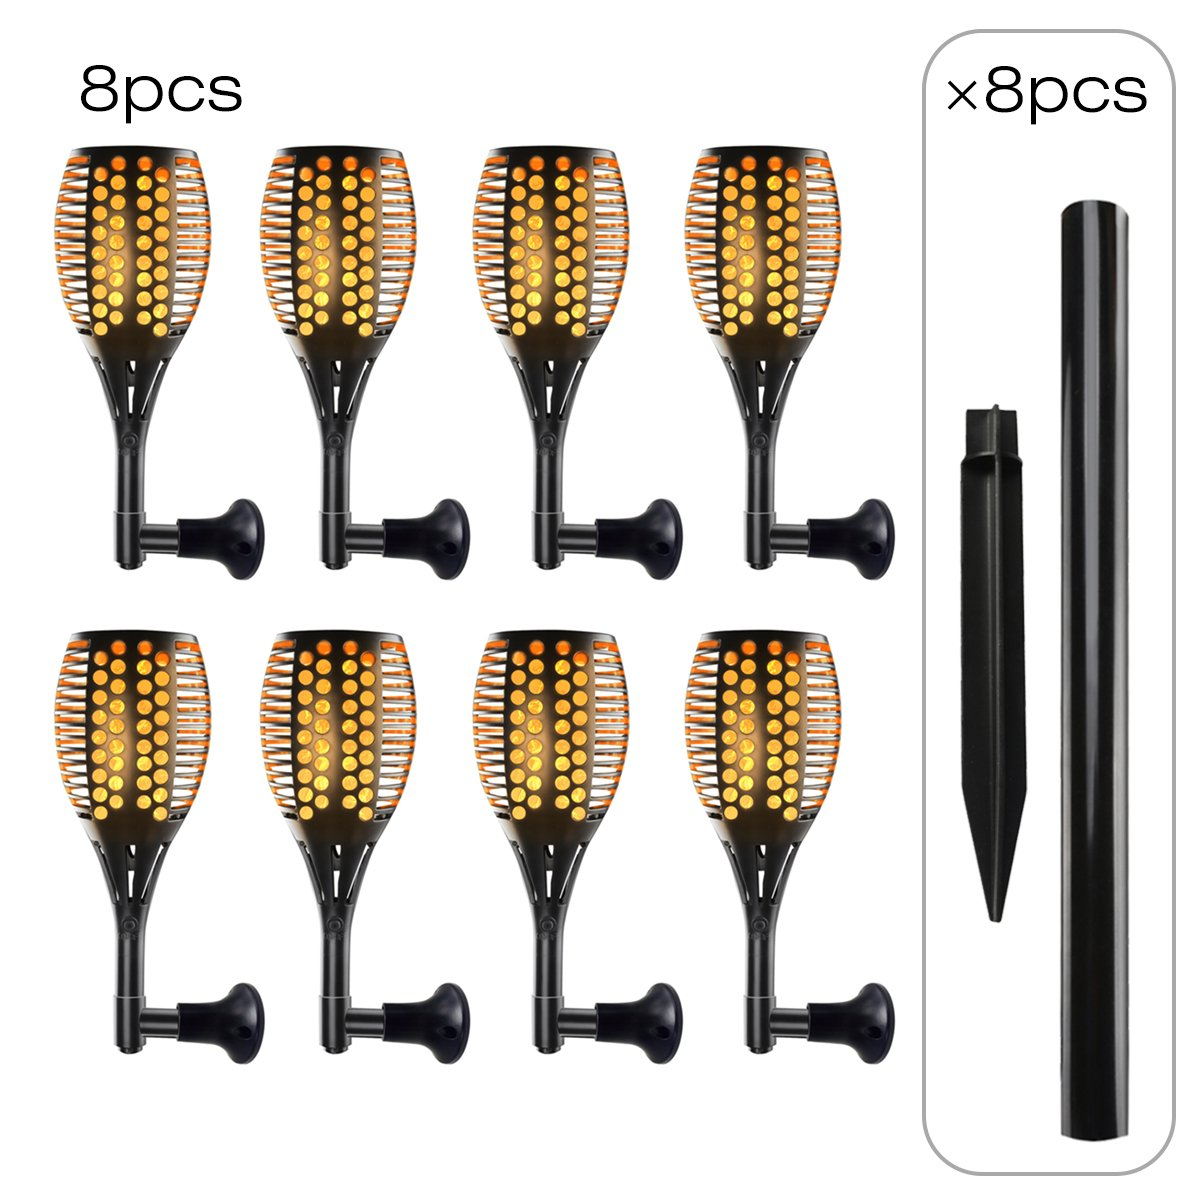 8 Pack Led Solar-Powered Dancing Flame Outdoor Torch Light, Tiki Torch Landscape Lights for Patio Path Backyard Garden Camping or Party, Flickering Fire Atmosphere Decorative Lamps for Indoor&Outdoor